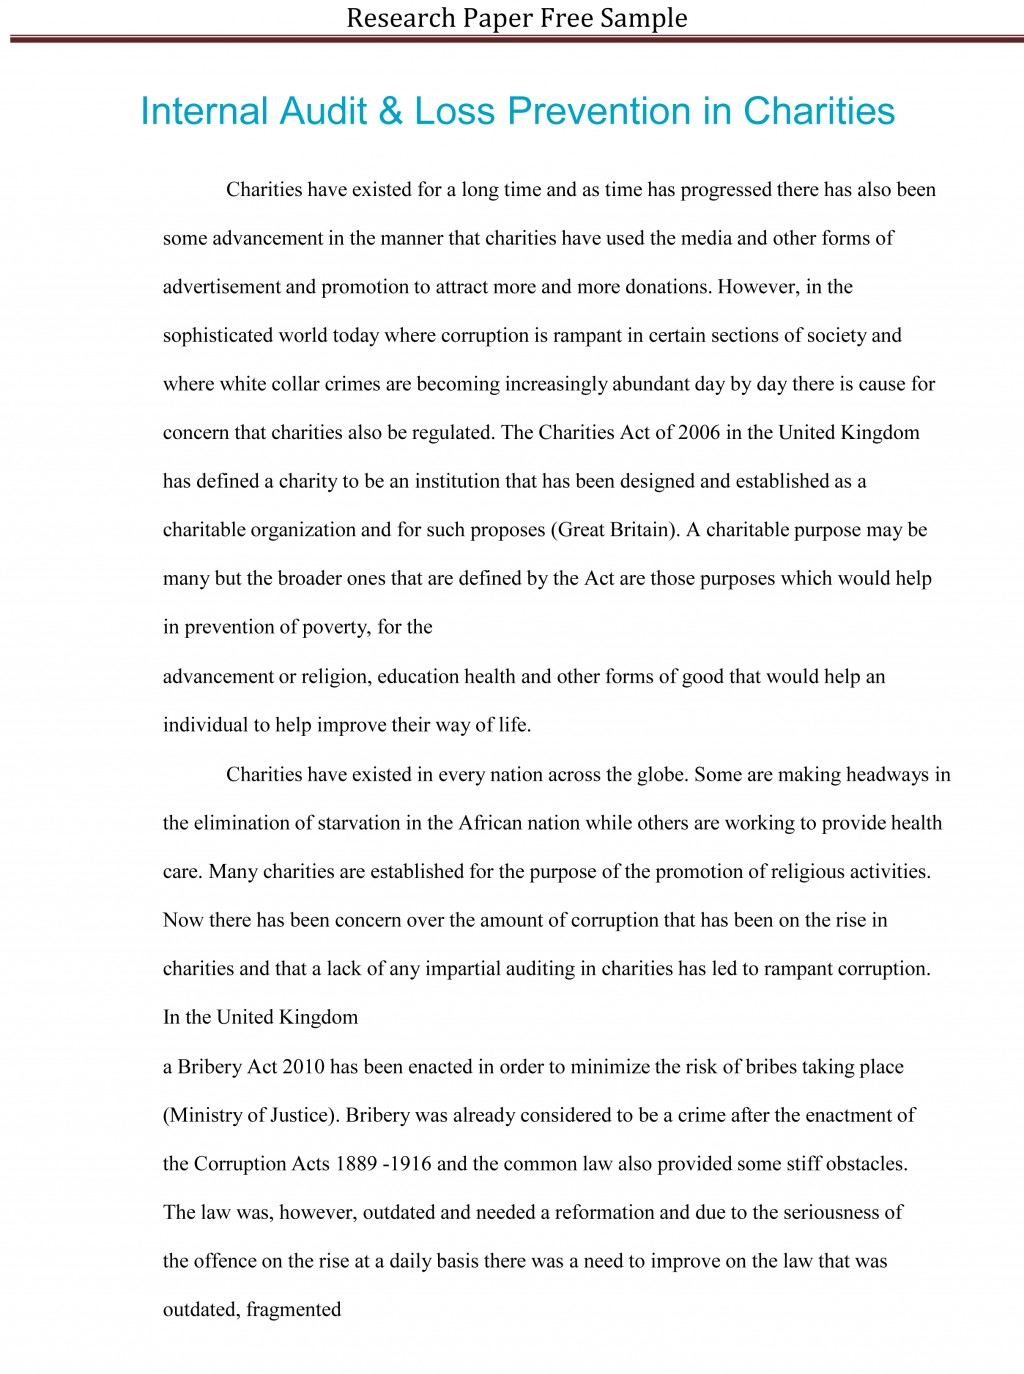 005 Custom Research Papers Paper Wondrous Write My Writers Writing Large